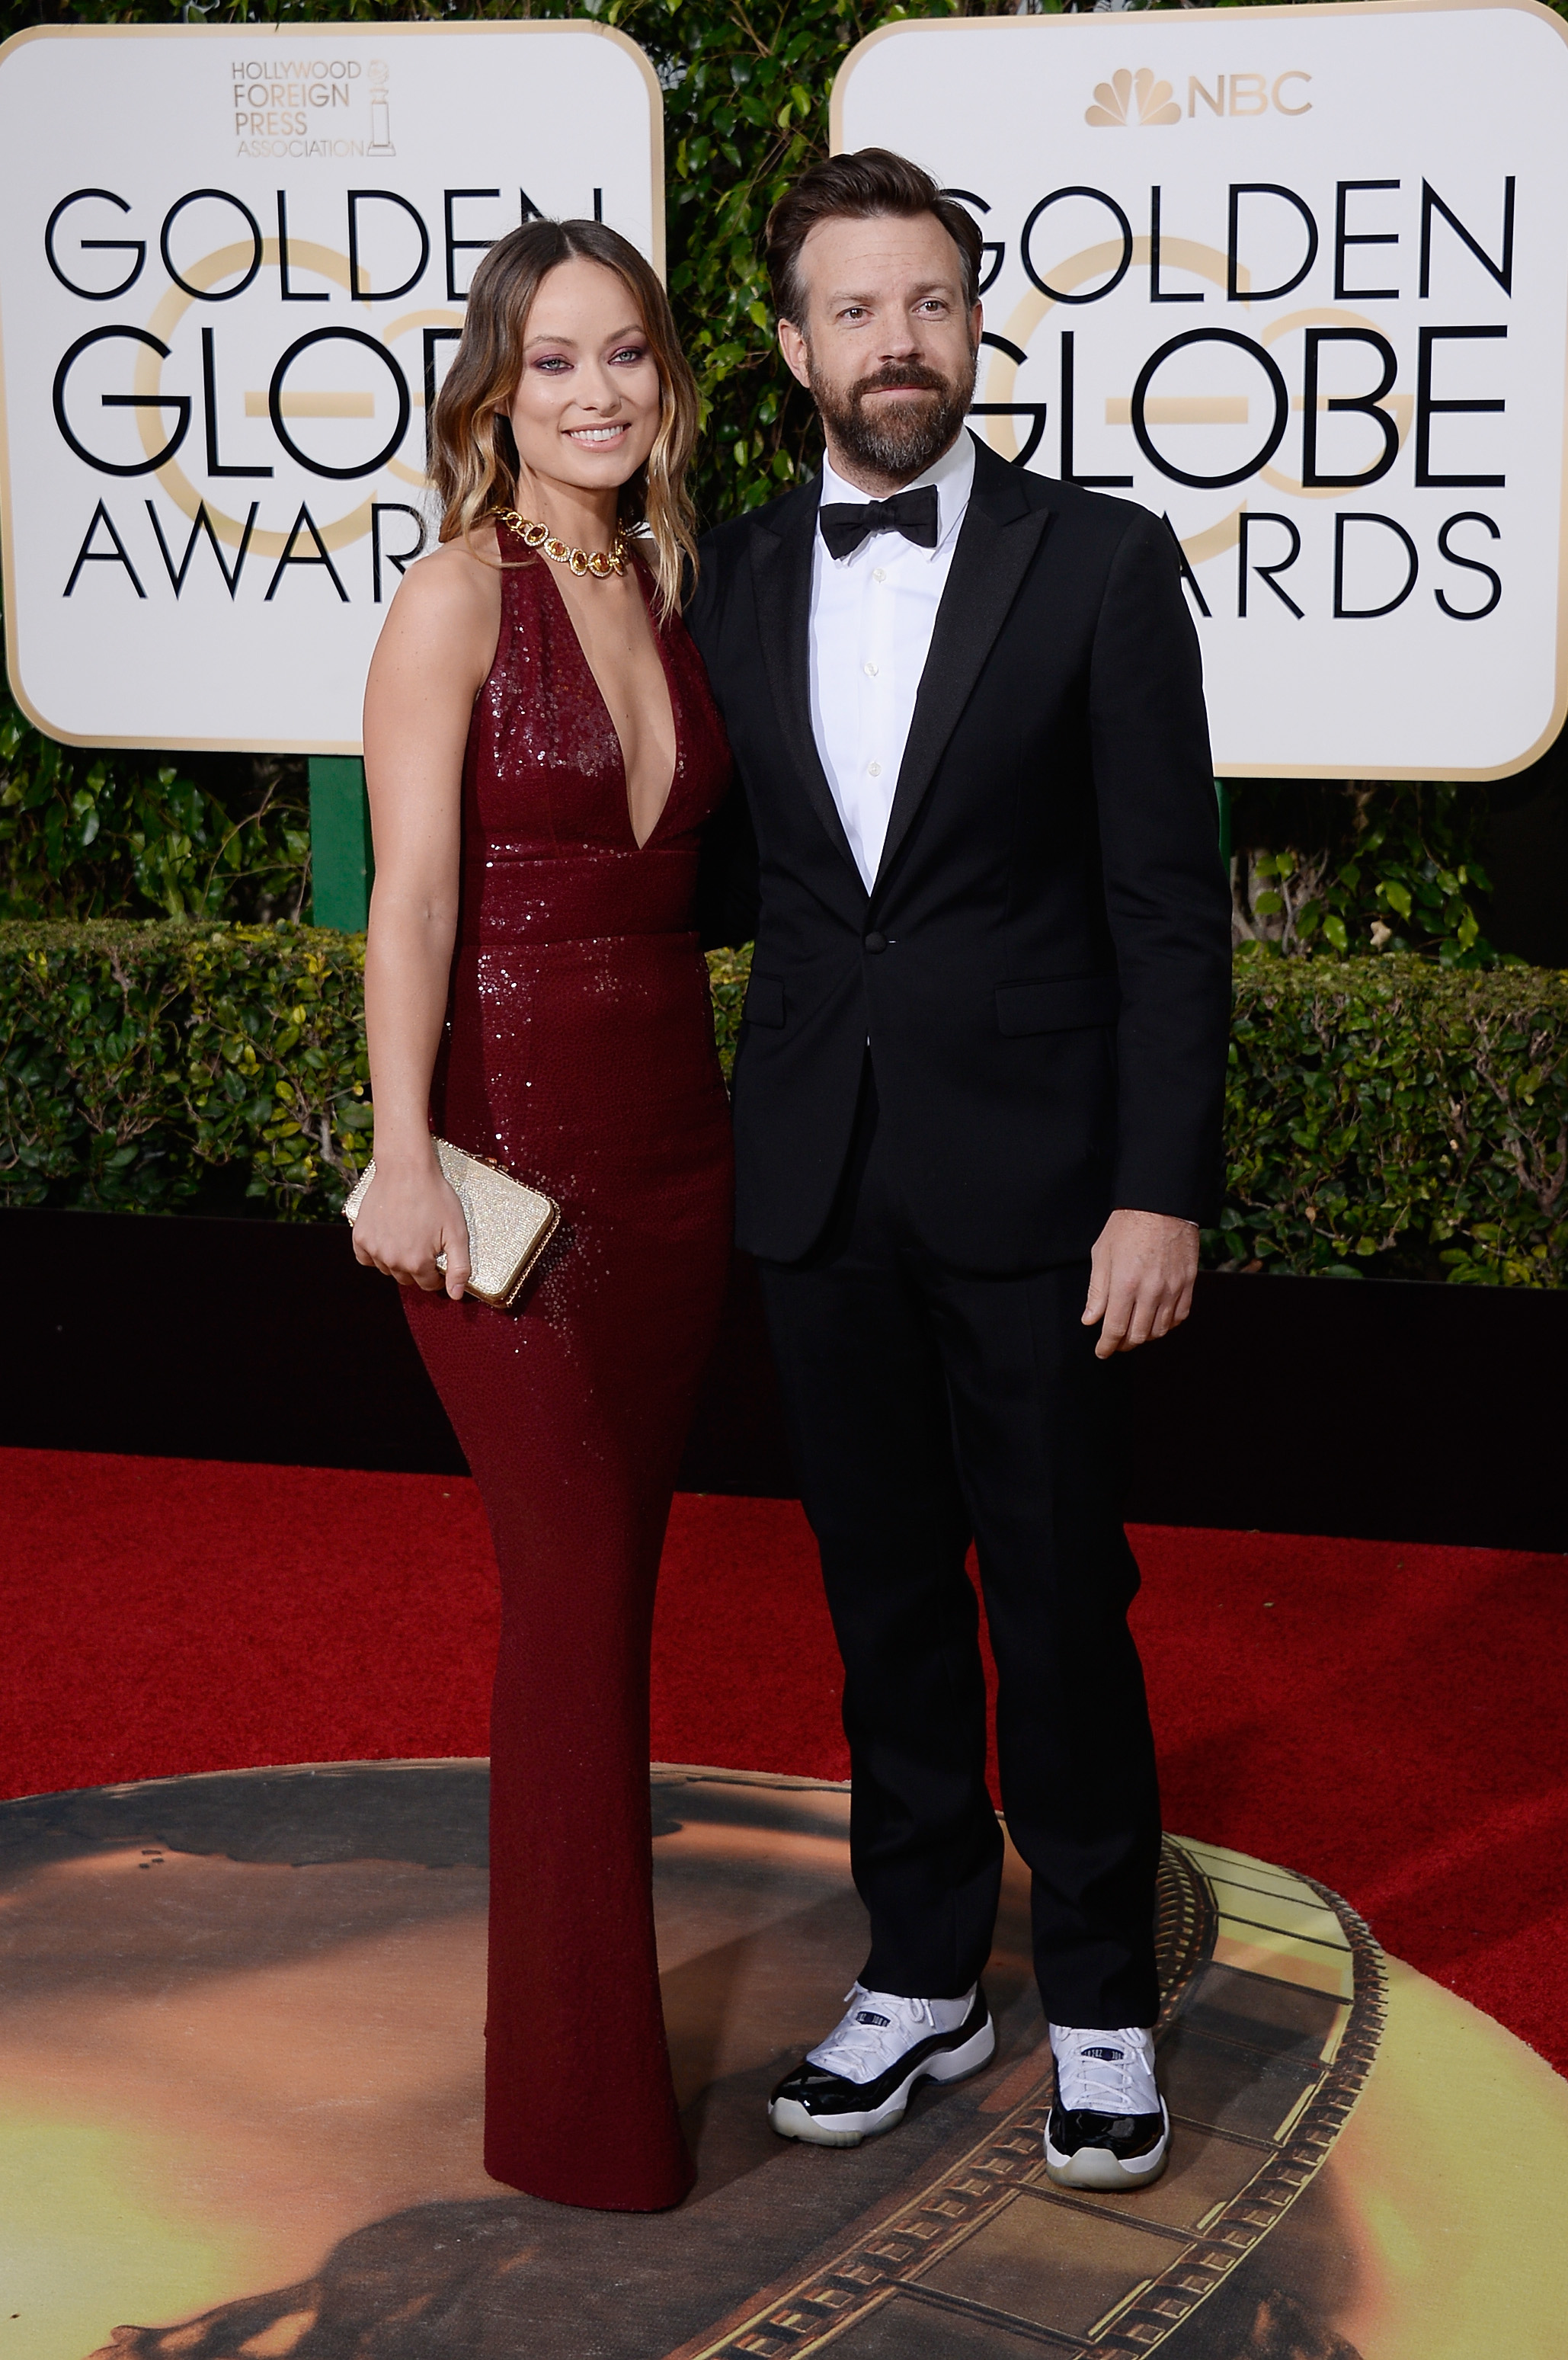 Olivia Wilde and Jason Sudeikis arrive to the 73rd Annual Golden Globe Awards on Jan. 10, 2016 in Beverly Hills.